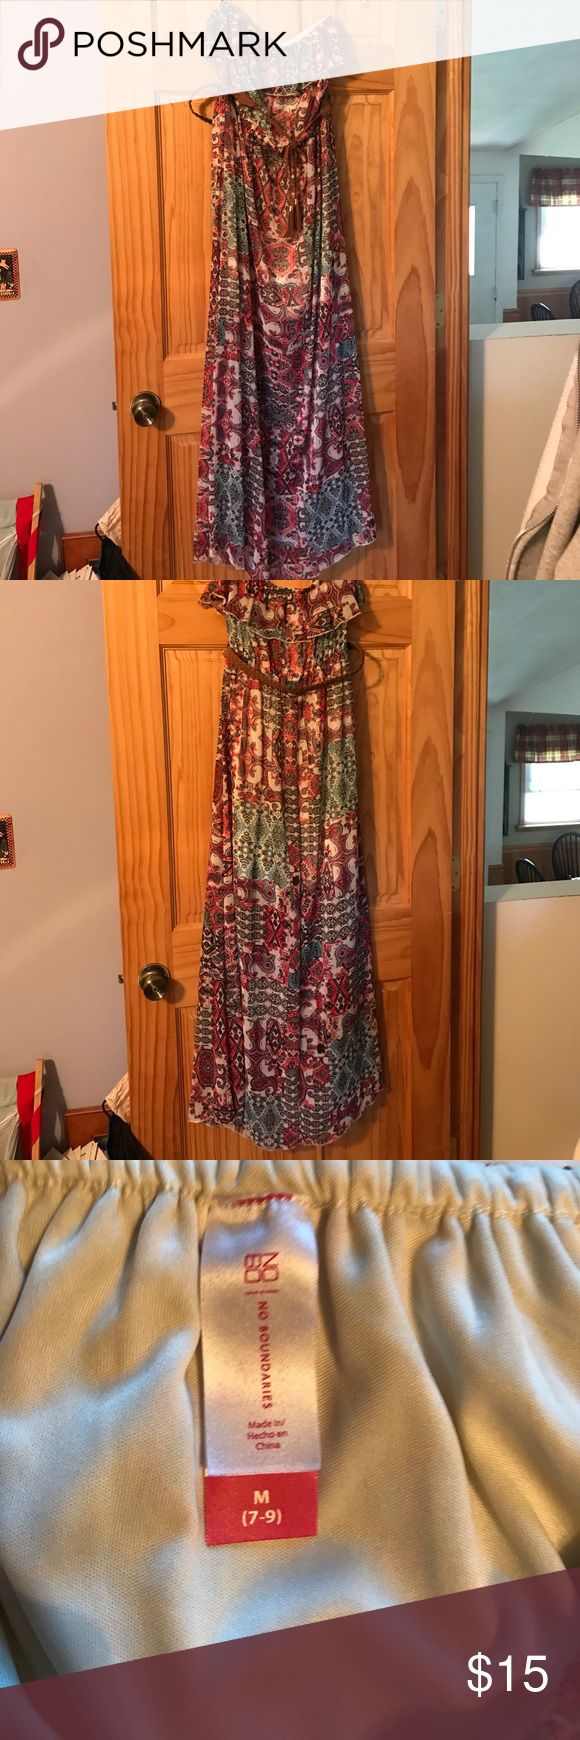 """No Boundaries strapless maxi dress with belt Only worn twice strapless Maxi dress with braided belt size M 7-9. Two layers super cute I am 5' 2"""" and i don't trip over No Boundaries Dresses Maxi"""